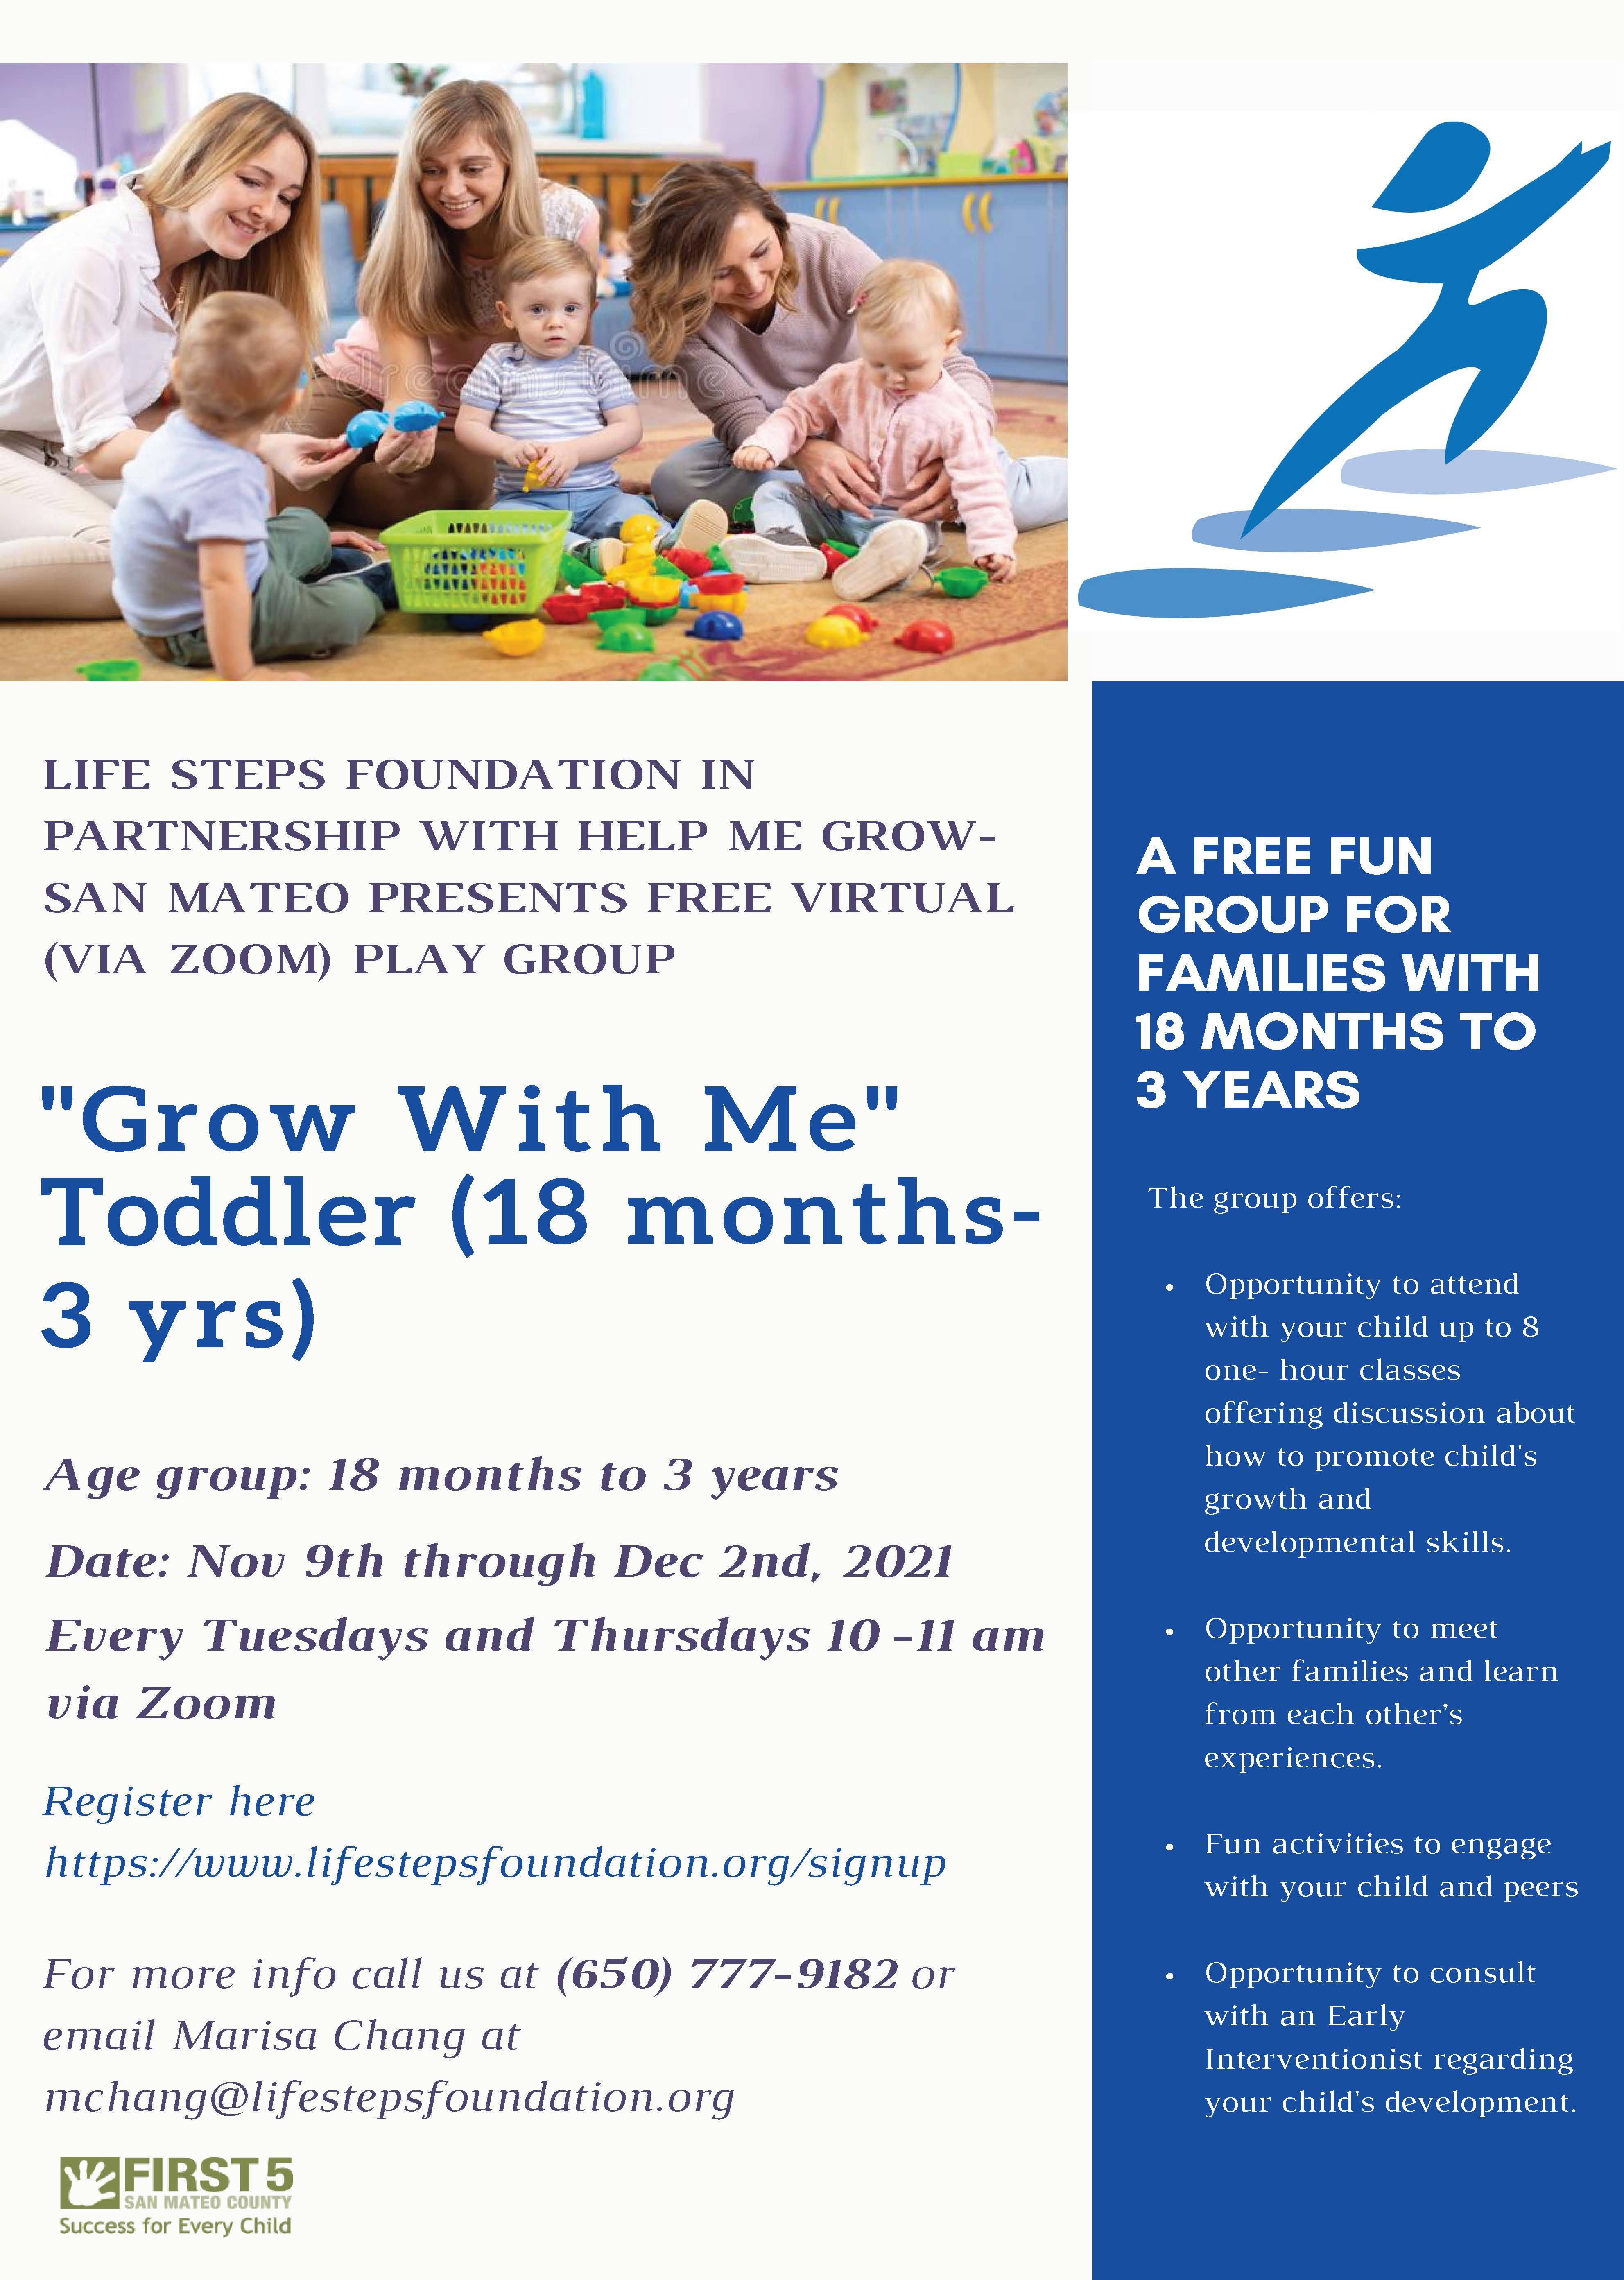 Grow With Me Toddler Session - Runs from November 9 to December 2, 2021